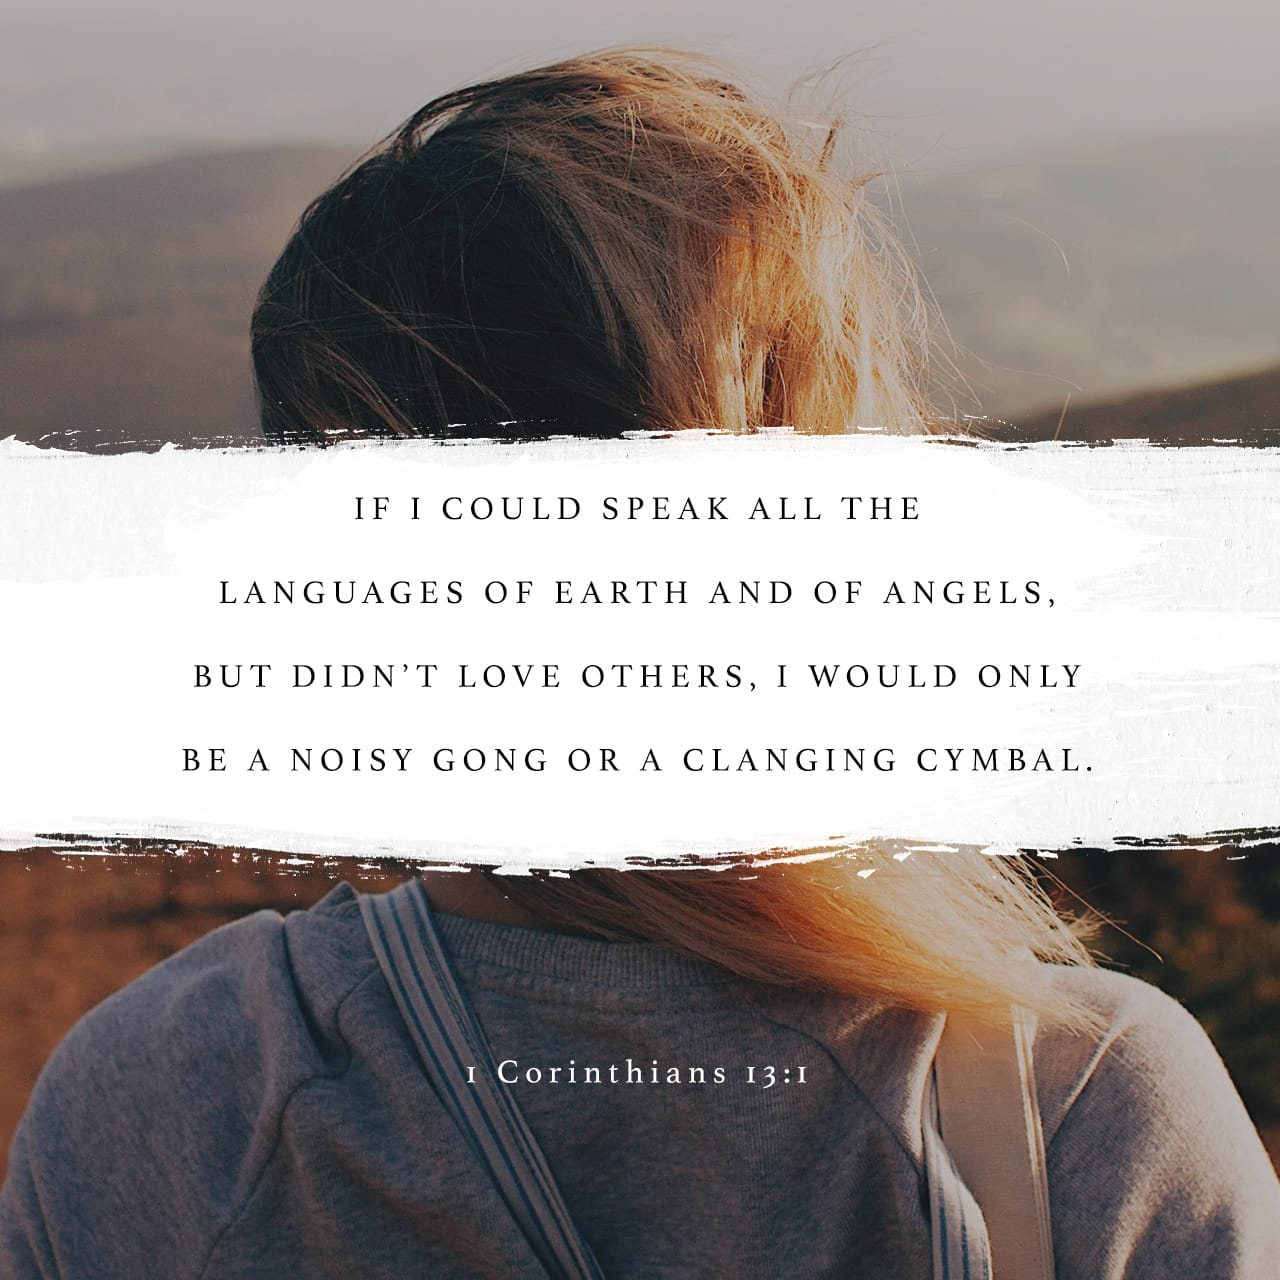 1 Corinthians 13:1 Though I speak with the tongues of men and of angels, and have not charity, I am become as sounding brass, or a tinkling cymbal. | King James Version (KJV)